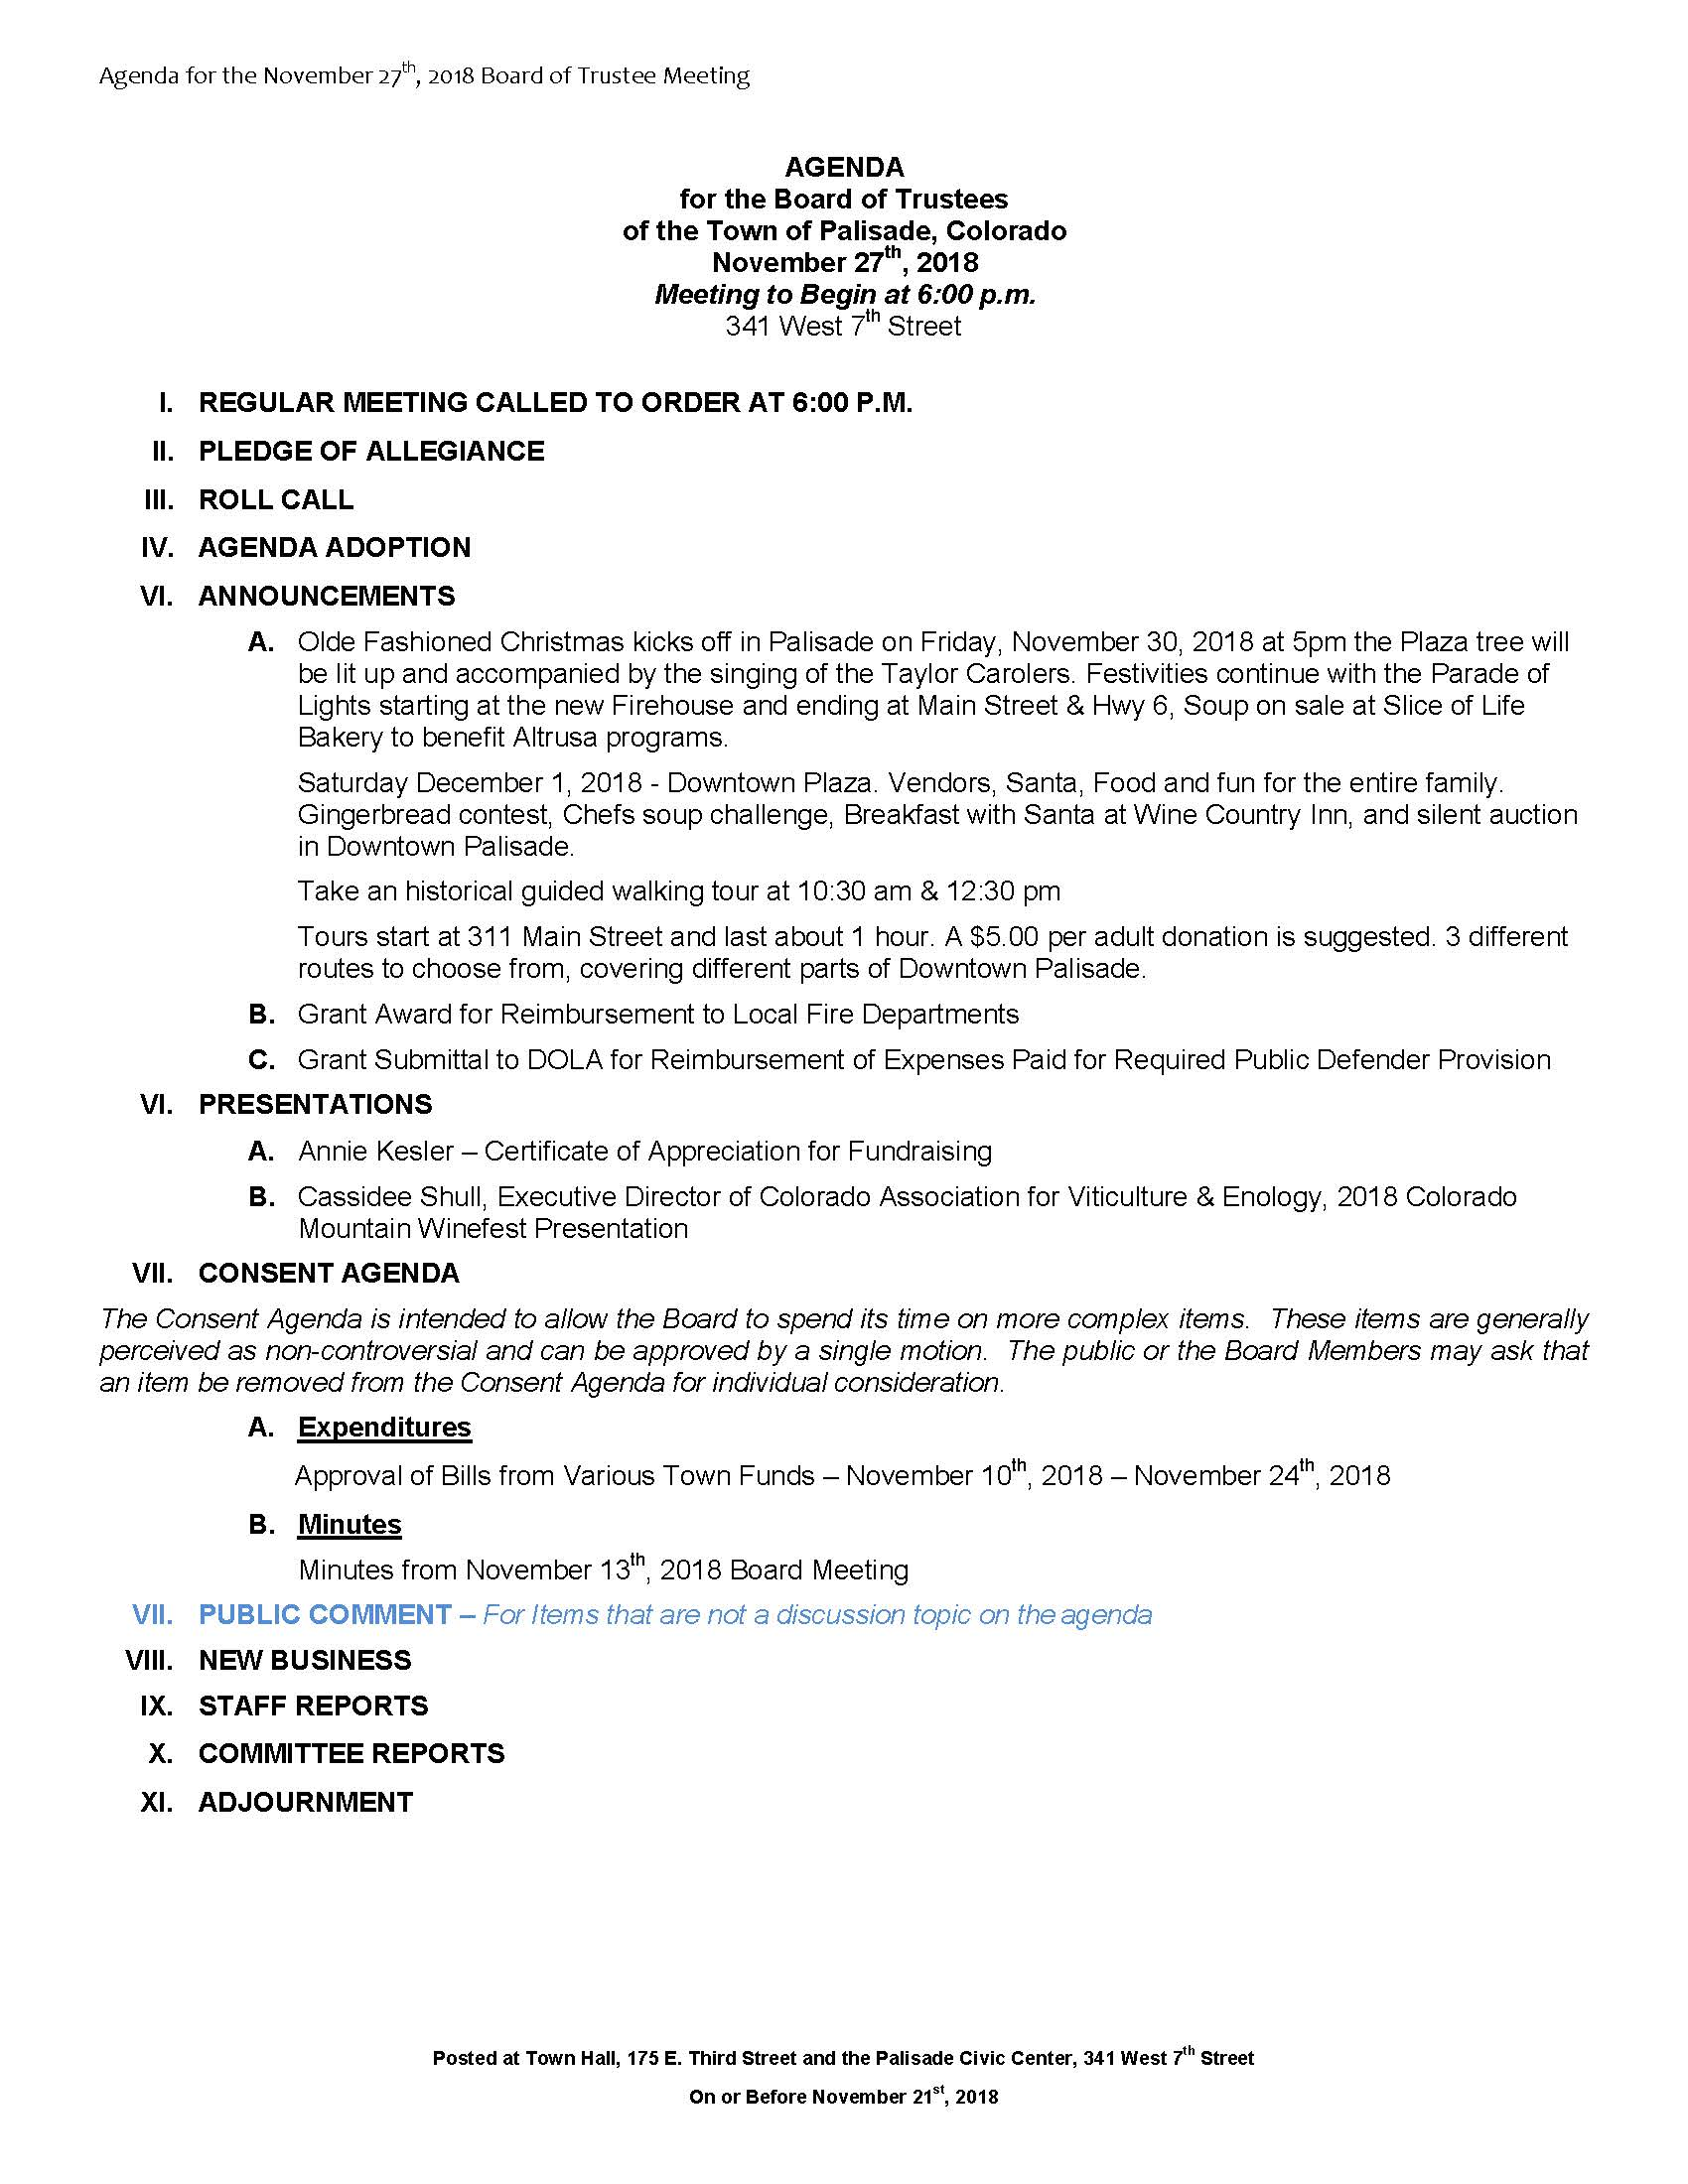 November 27th 2018 Board Meeting Agenda